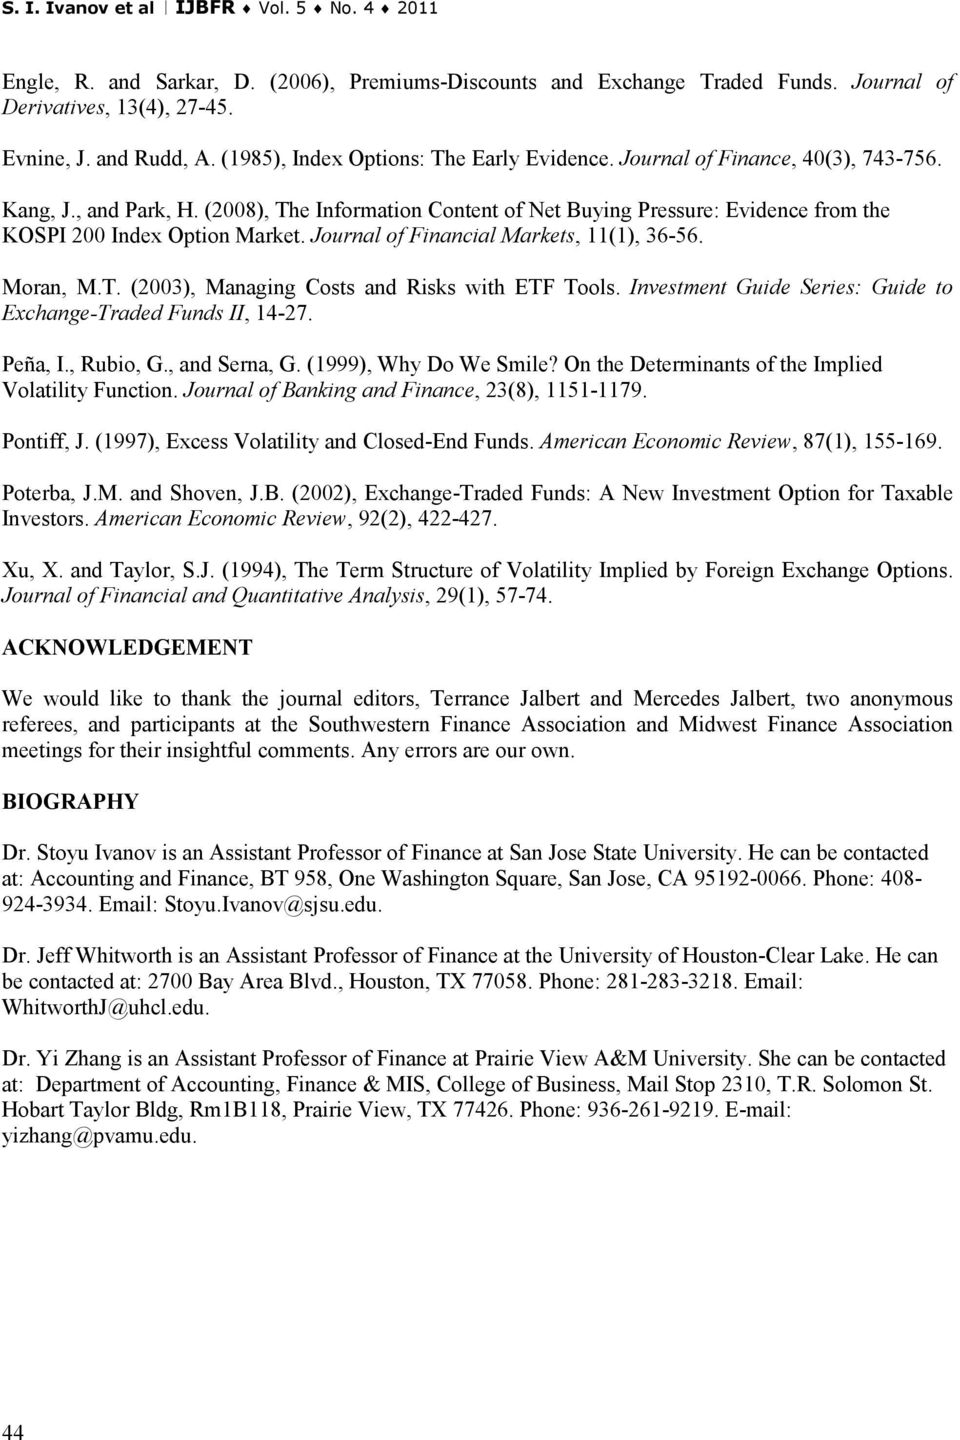 Journal of Fnancal Markets, 11(1), 36-56. Moran, M.T. (2003), Managng Costs and Rsks wth ETF Tools. Investment Gude Seres: Gude to Exchange-Traded Funds II, 14-27. Peña, I., Rubo, G., and Serna, G.